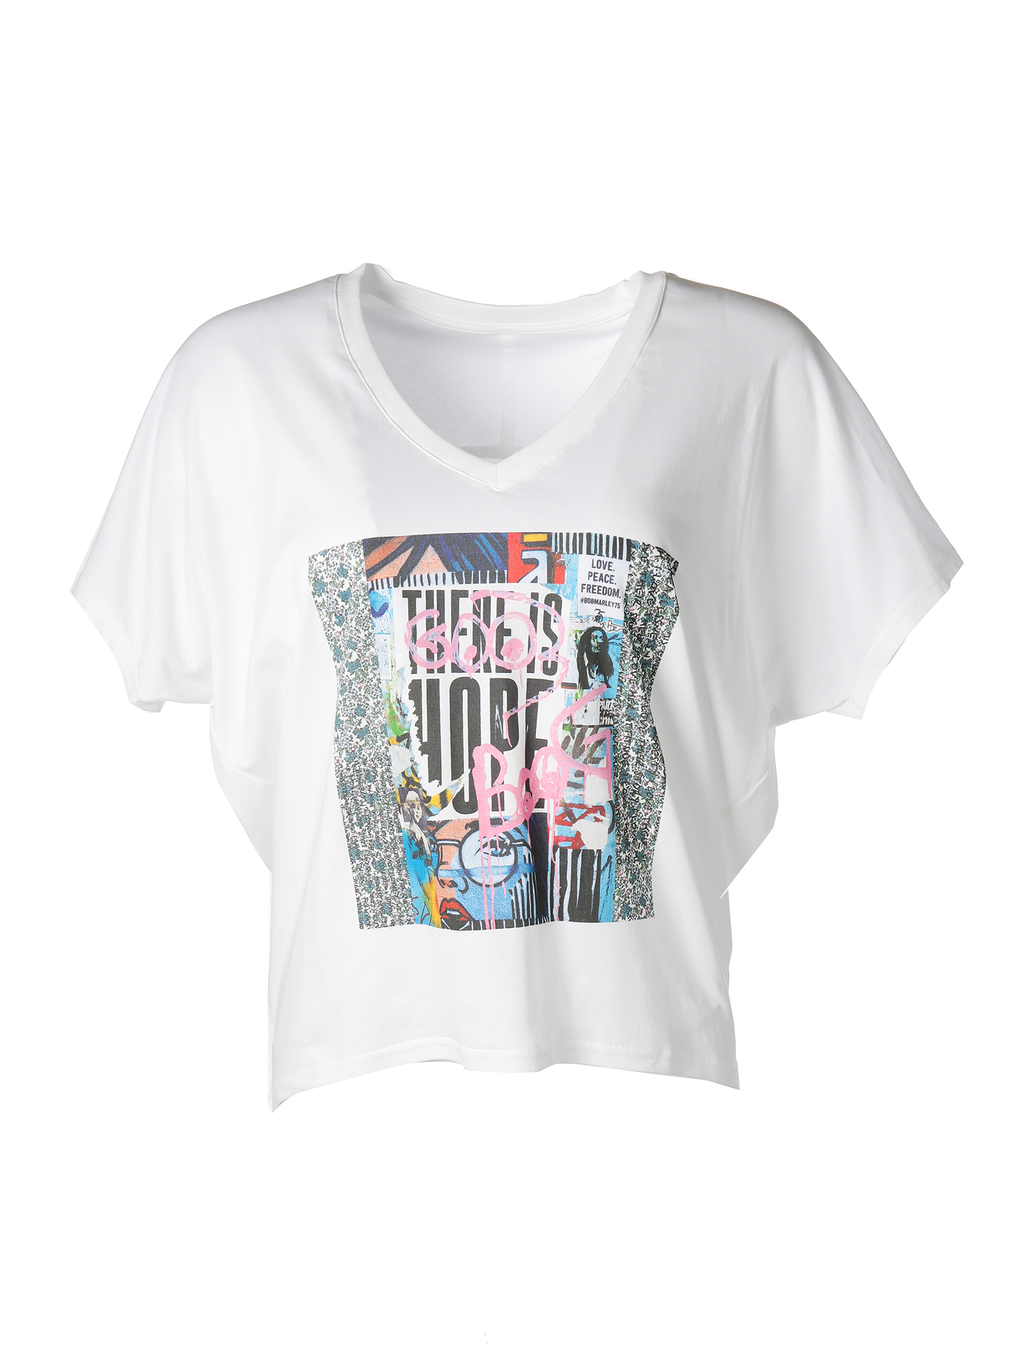 Suzi Roher Velvet Graphic T-shirt- There Is Hope